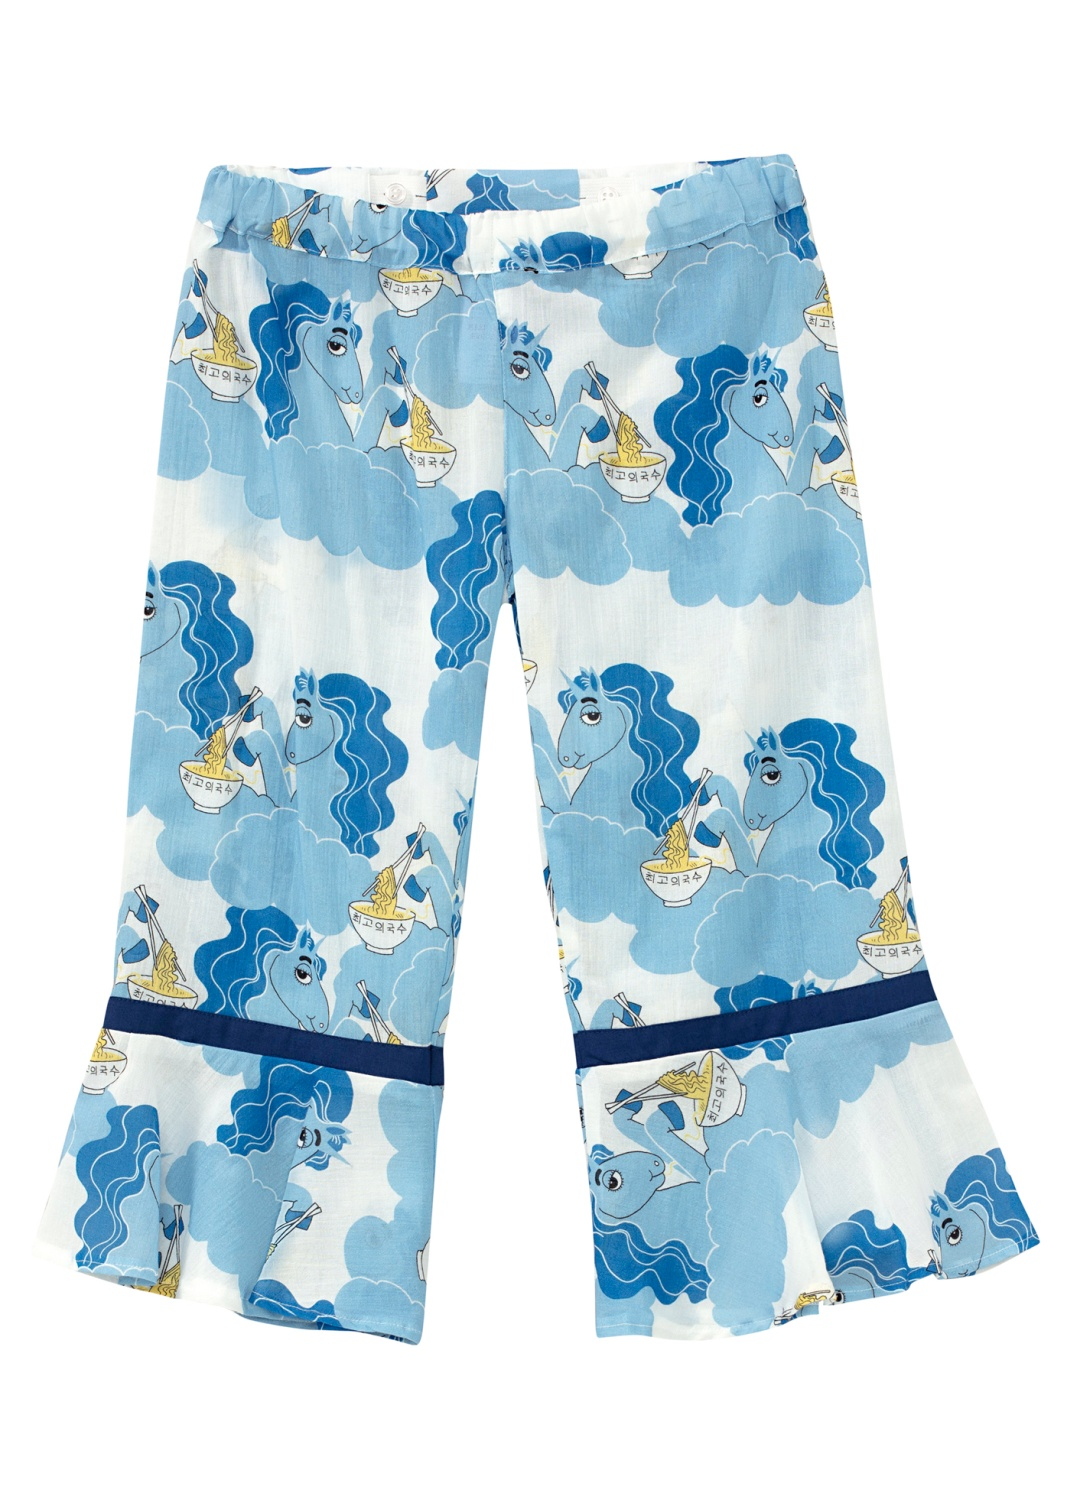 Unicorn noodles woven trousers -X- image number 0